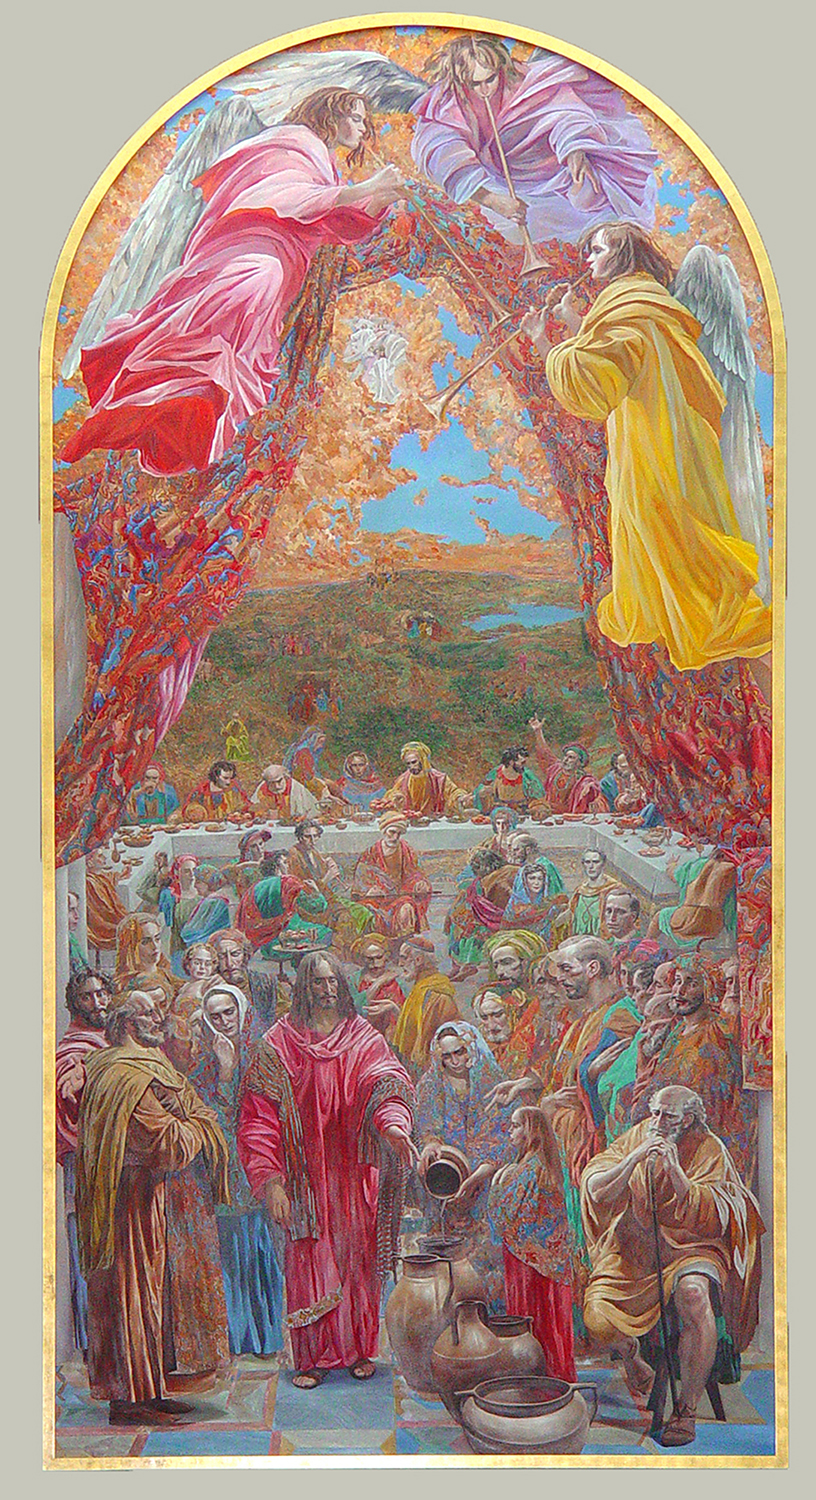 Oil on Linen / 18 ft x 9 ft Collection of the Collegedale Seventh Day Adventist Church, Chattanooga, Tennessee